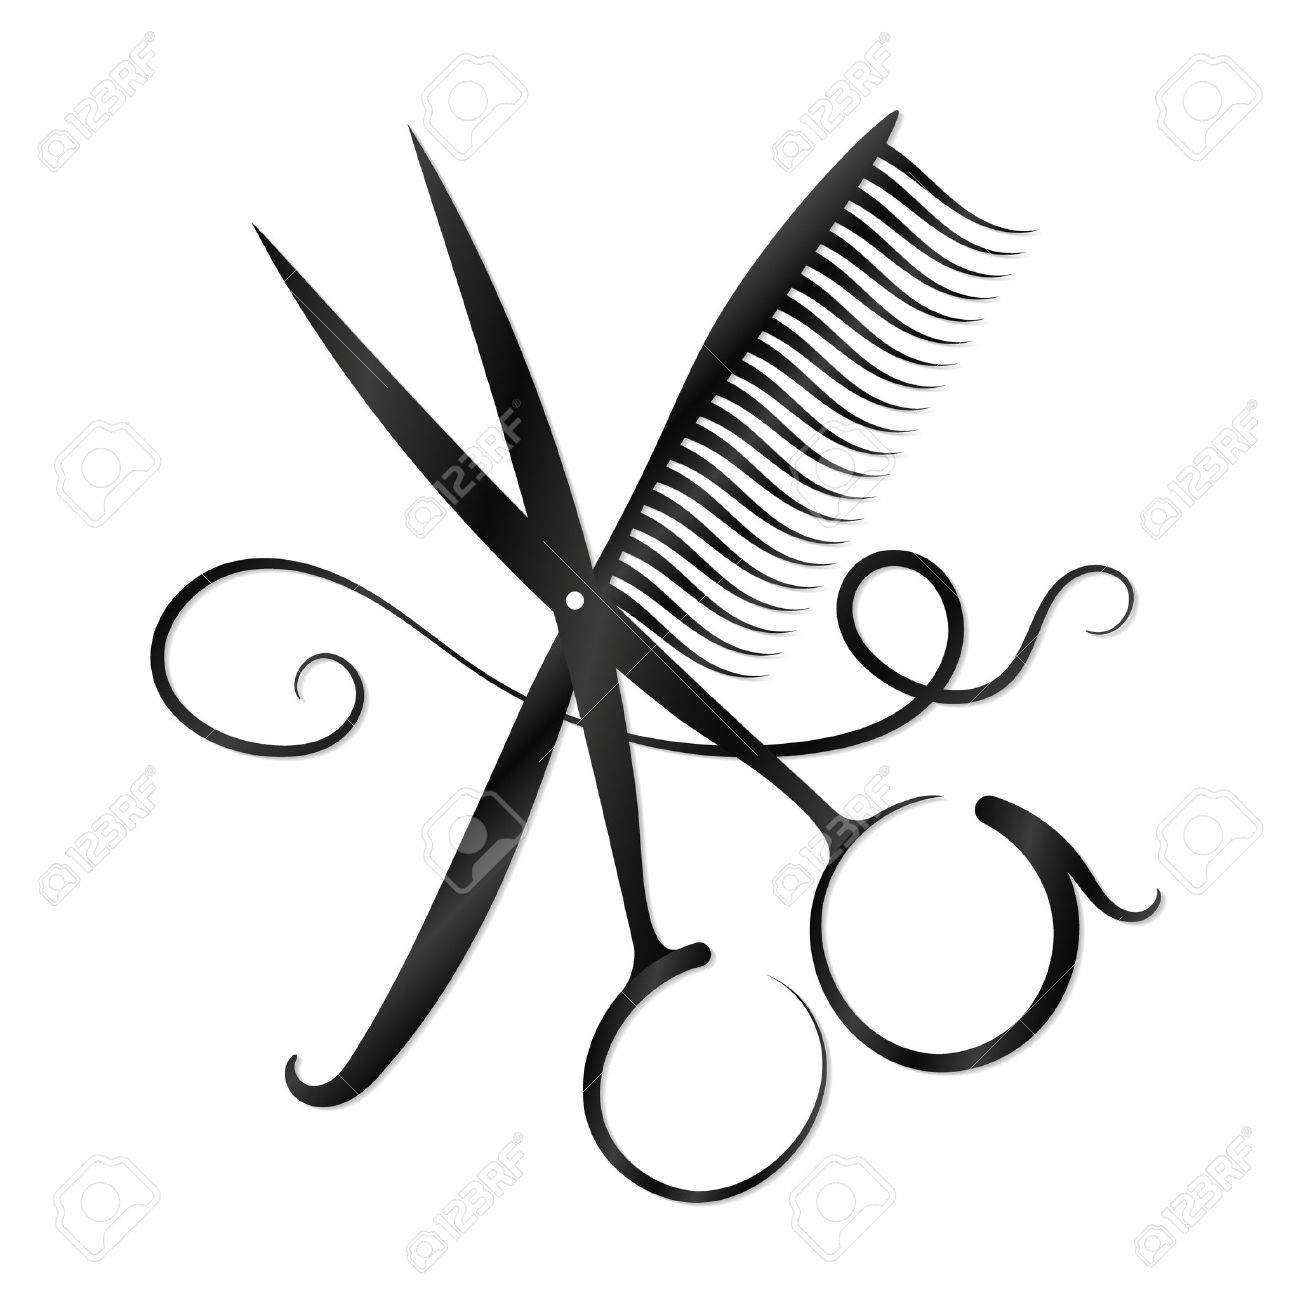 scissors comb and hair for business royalty free cliparts vectors